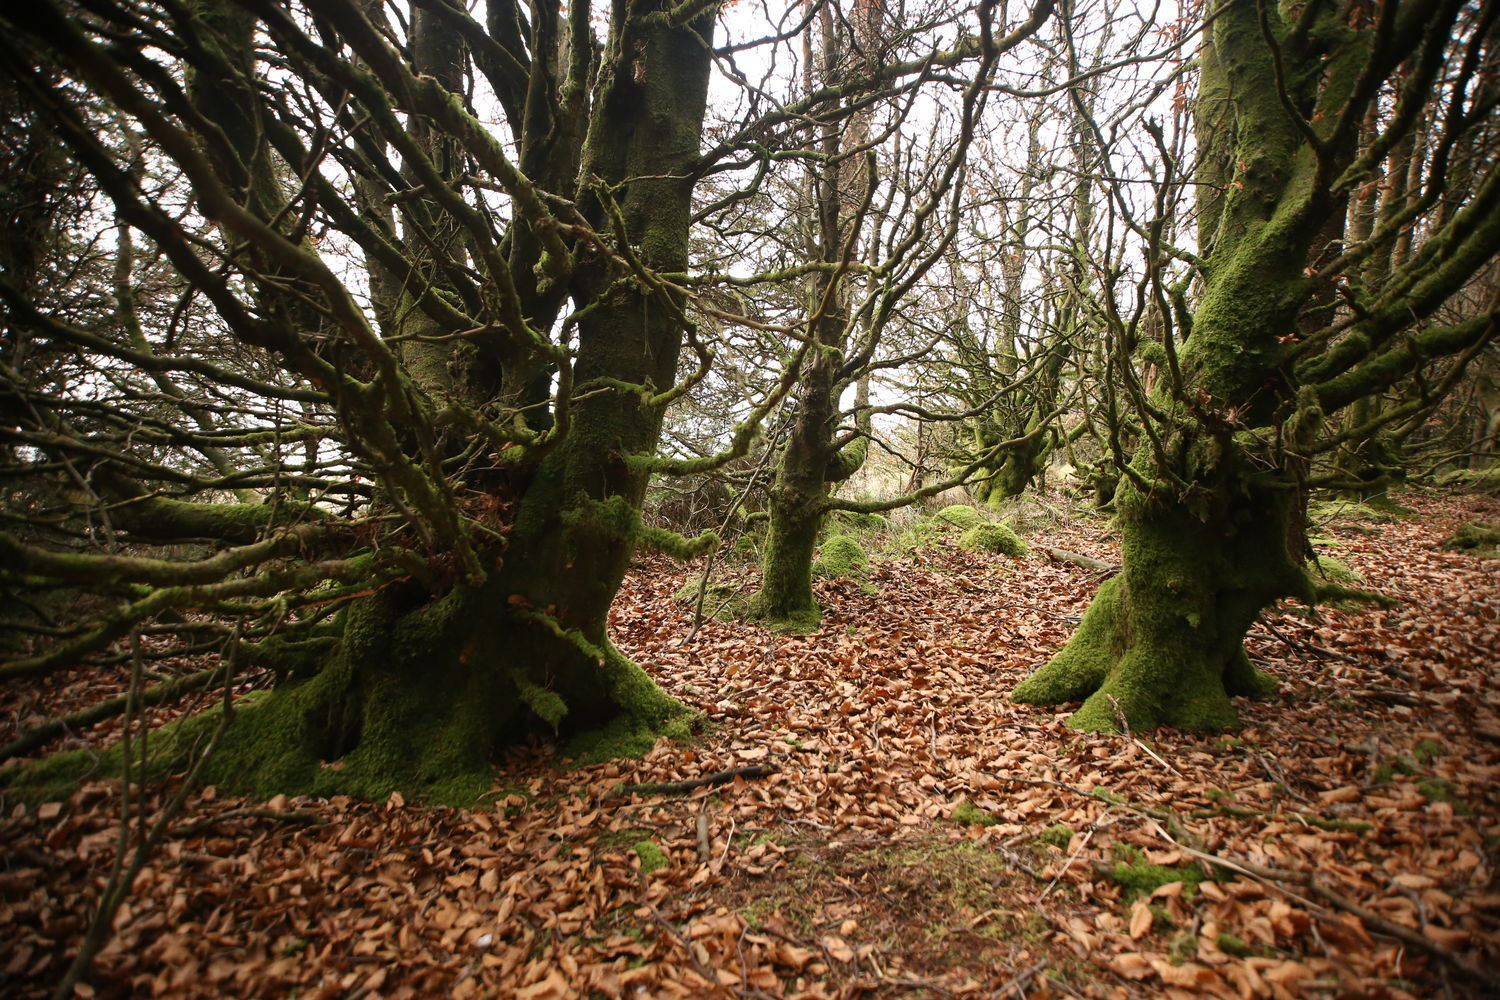 DARTMOOR trees w/ arms